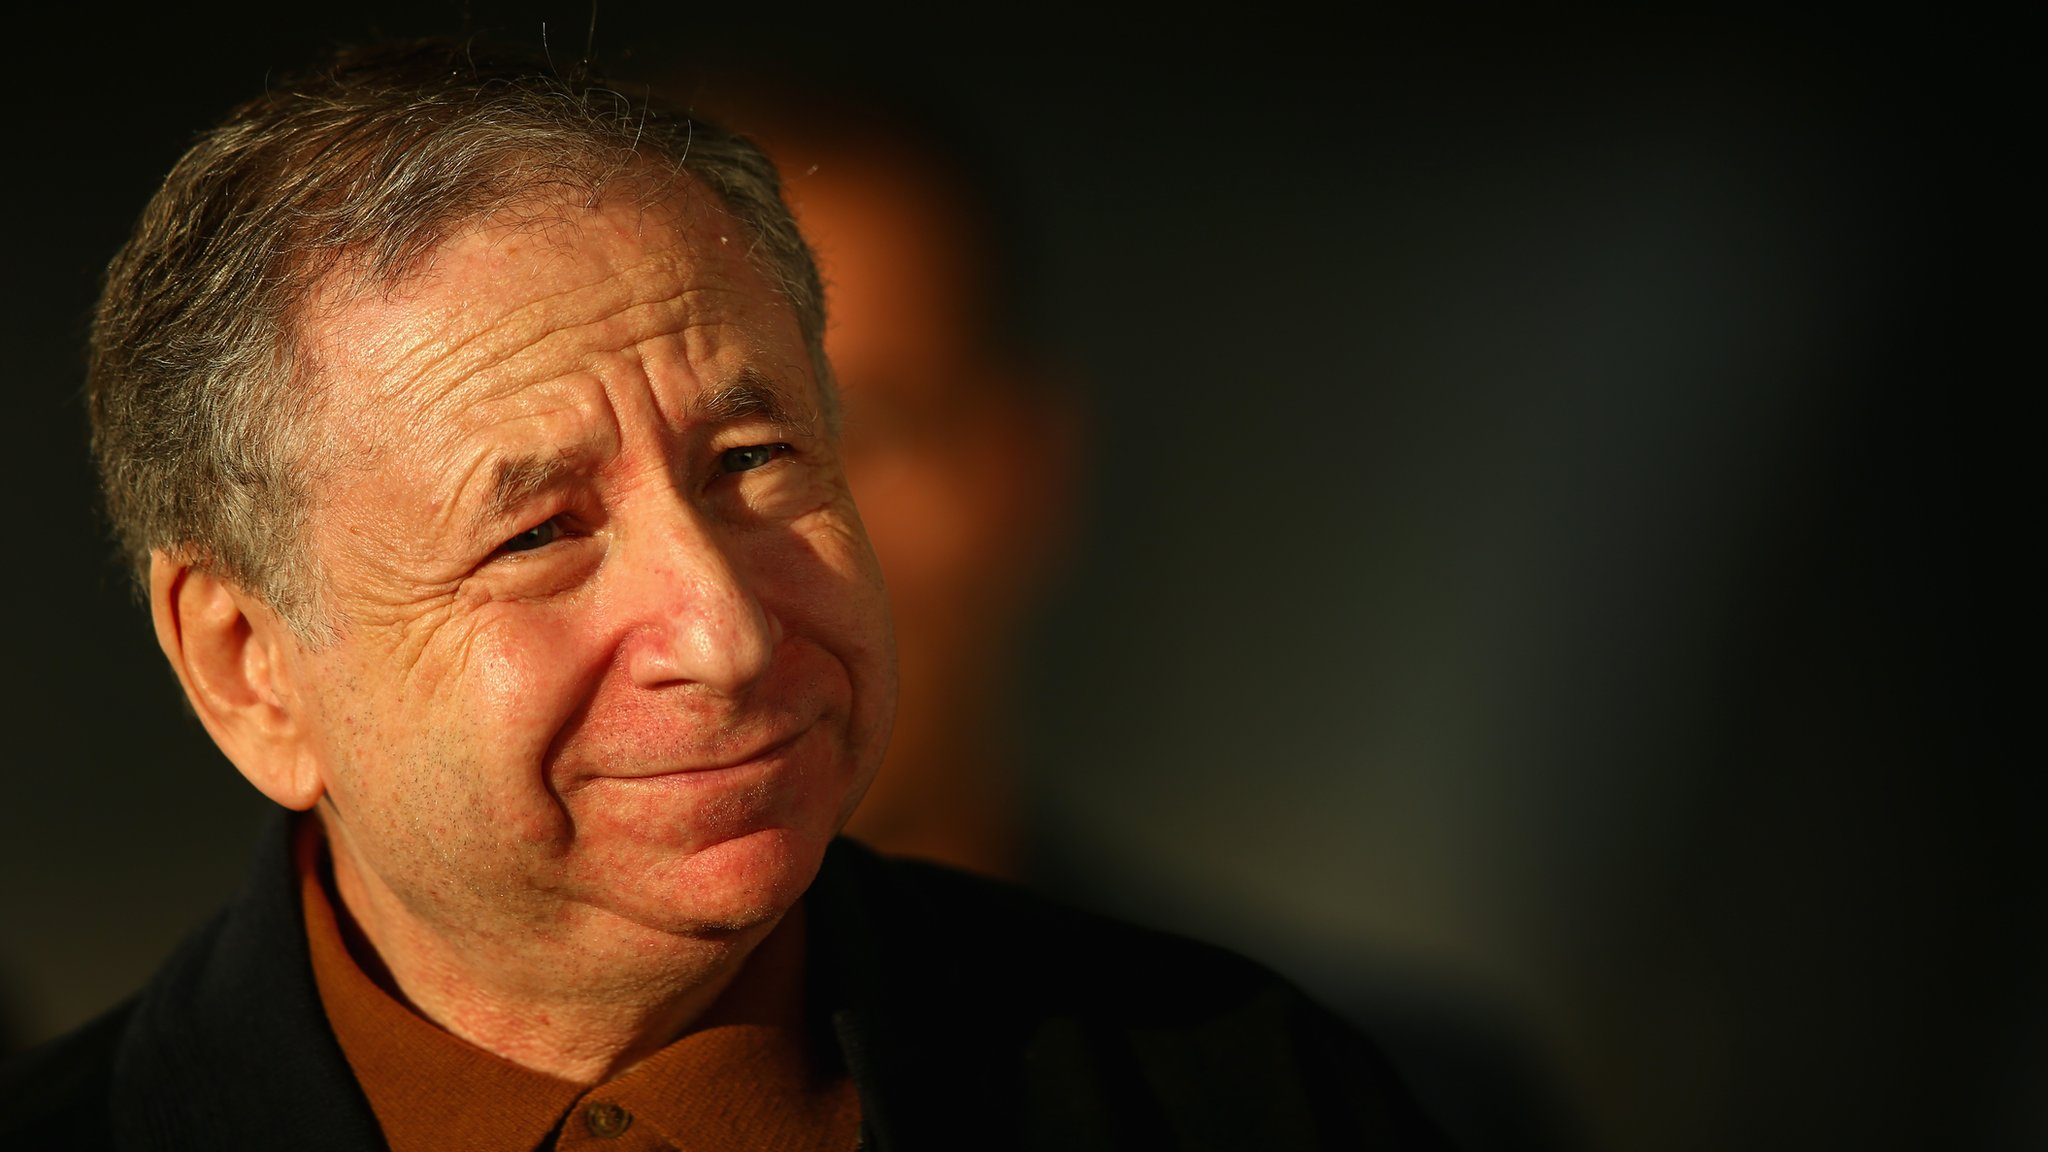 Jean Todt re-elected unopposed as president of FIA for third term